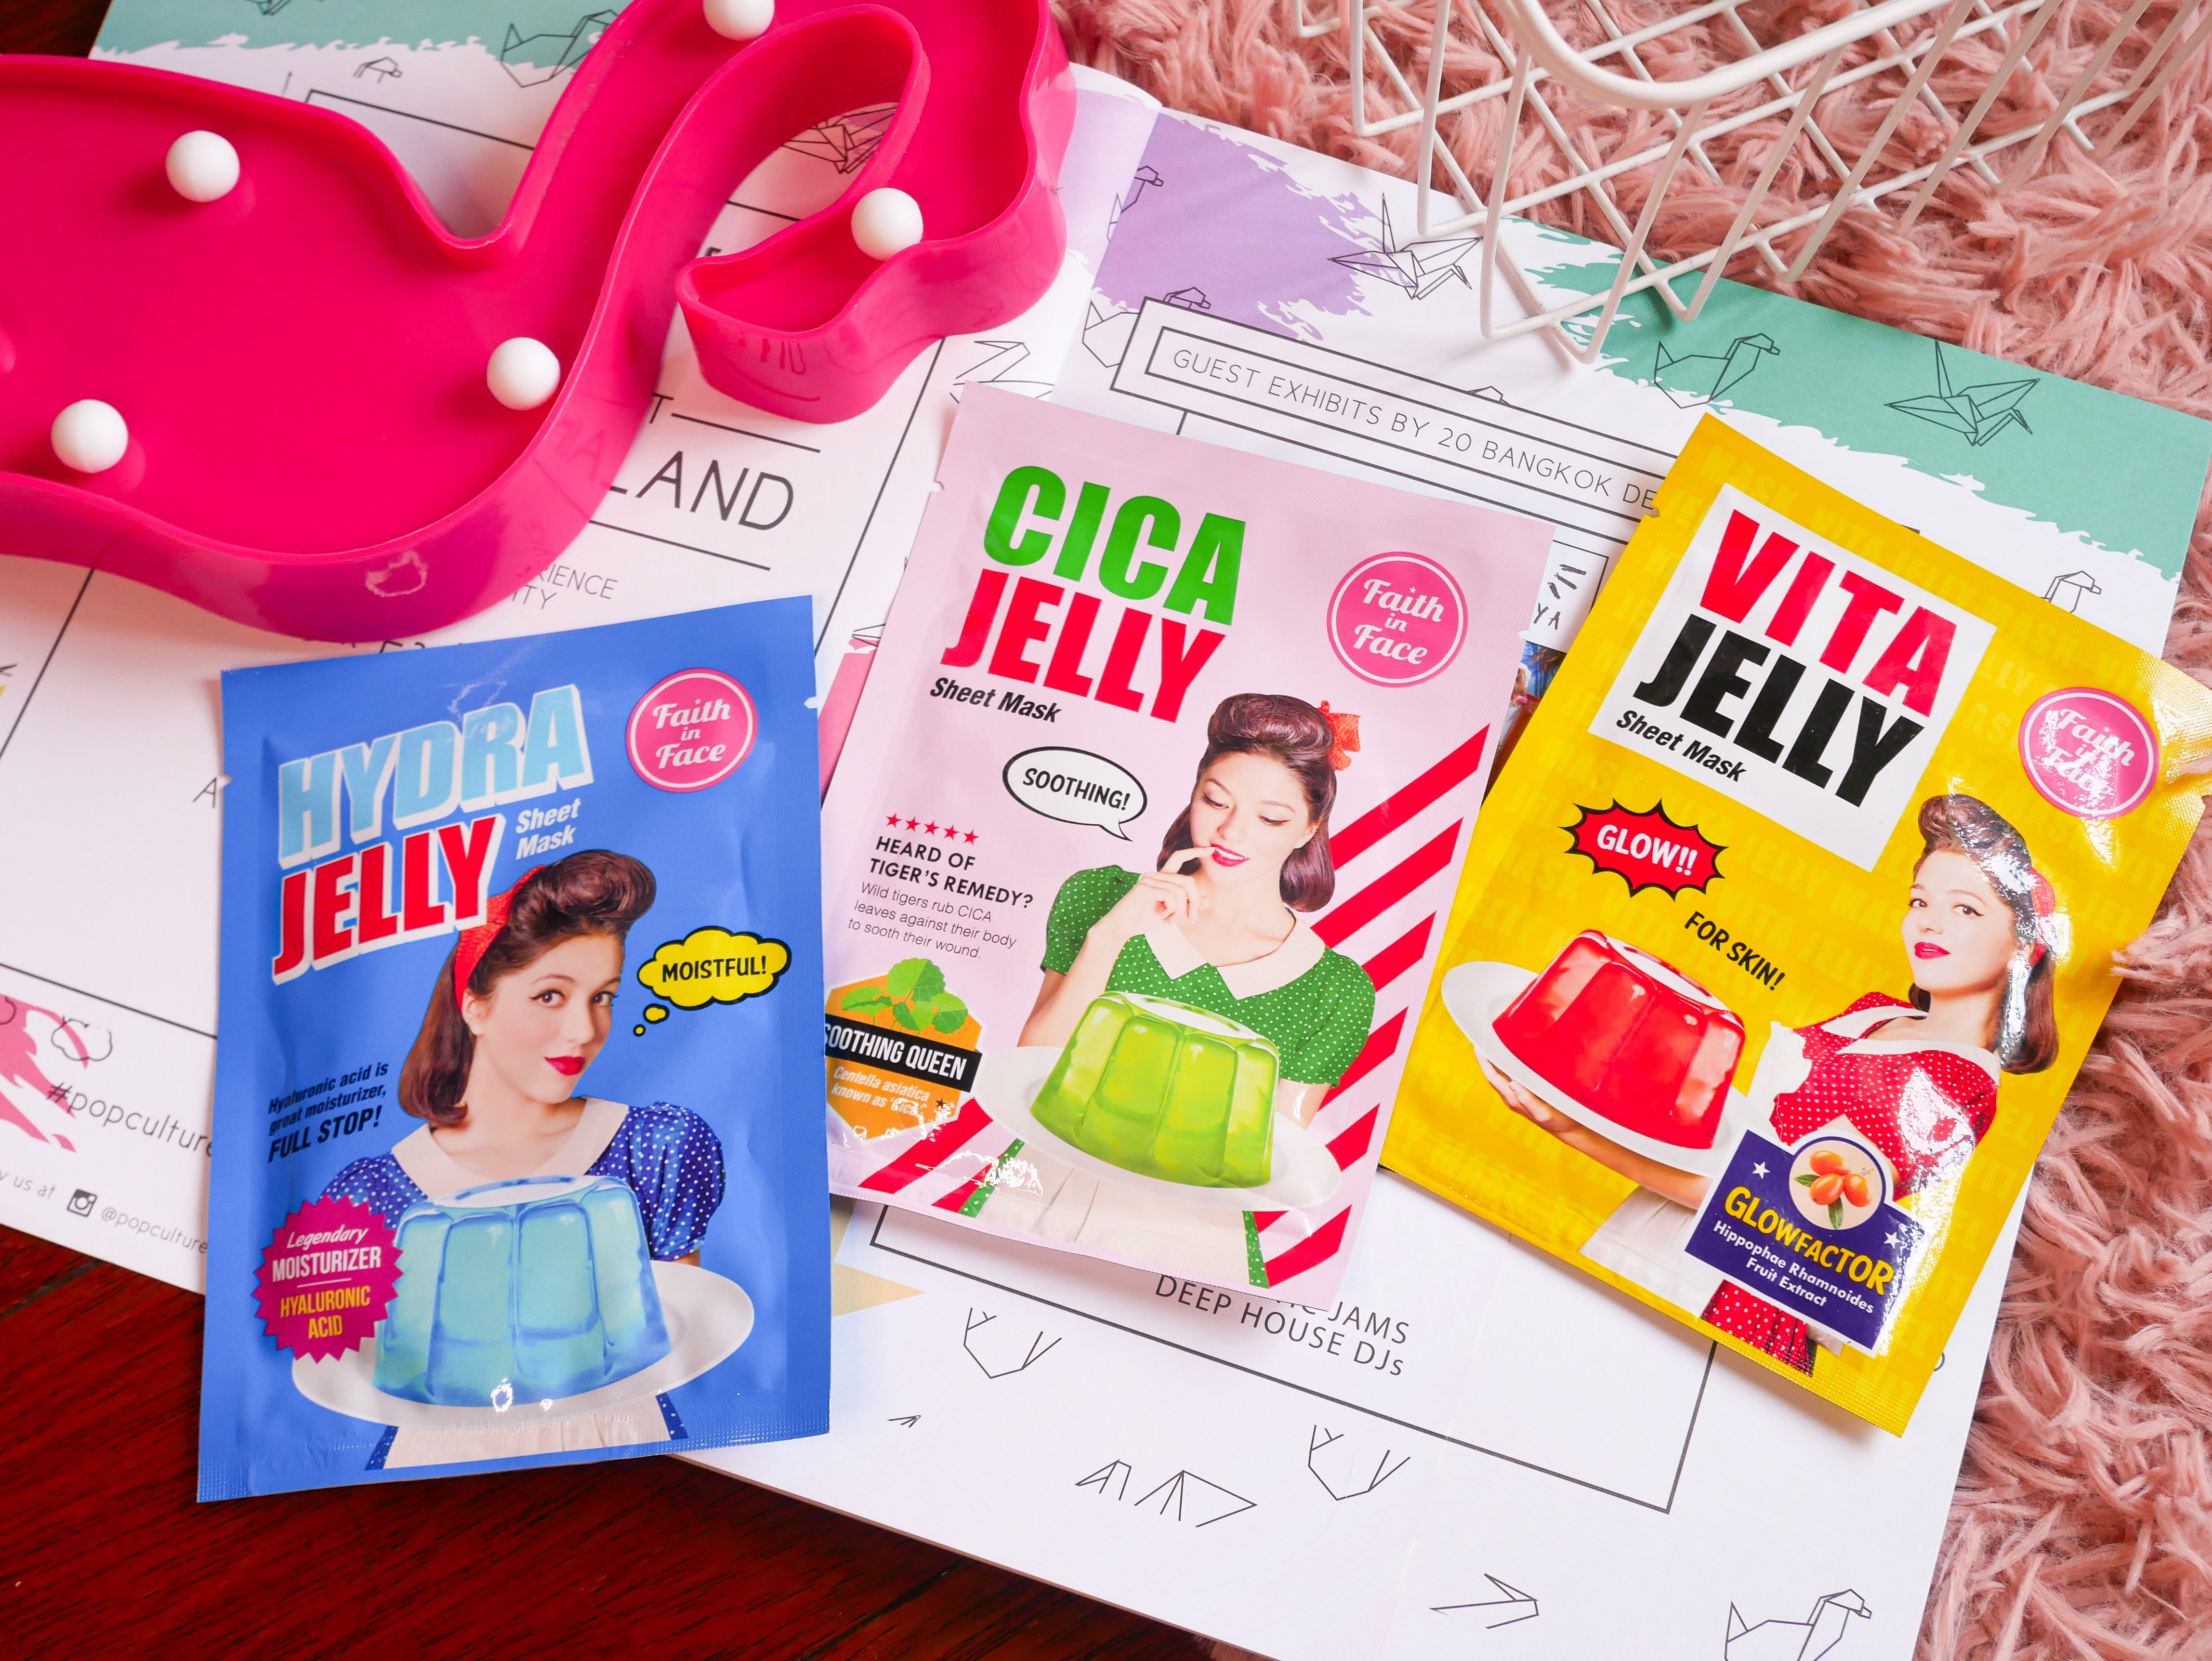 REVIEW   Faith In Face Jelly Sheet Mask #Cica, Hydra & Vita